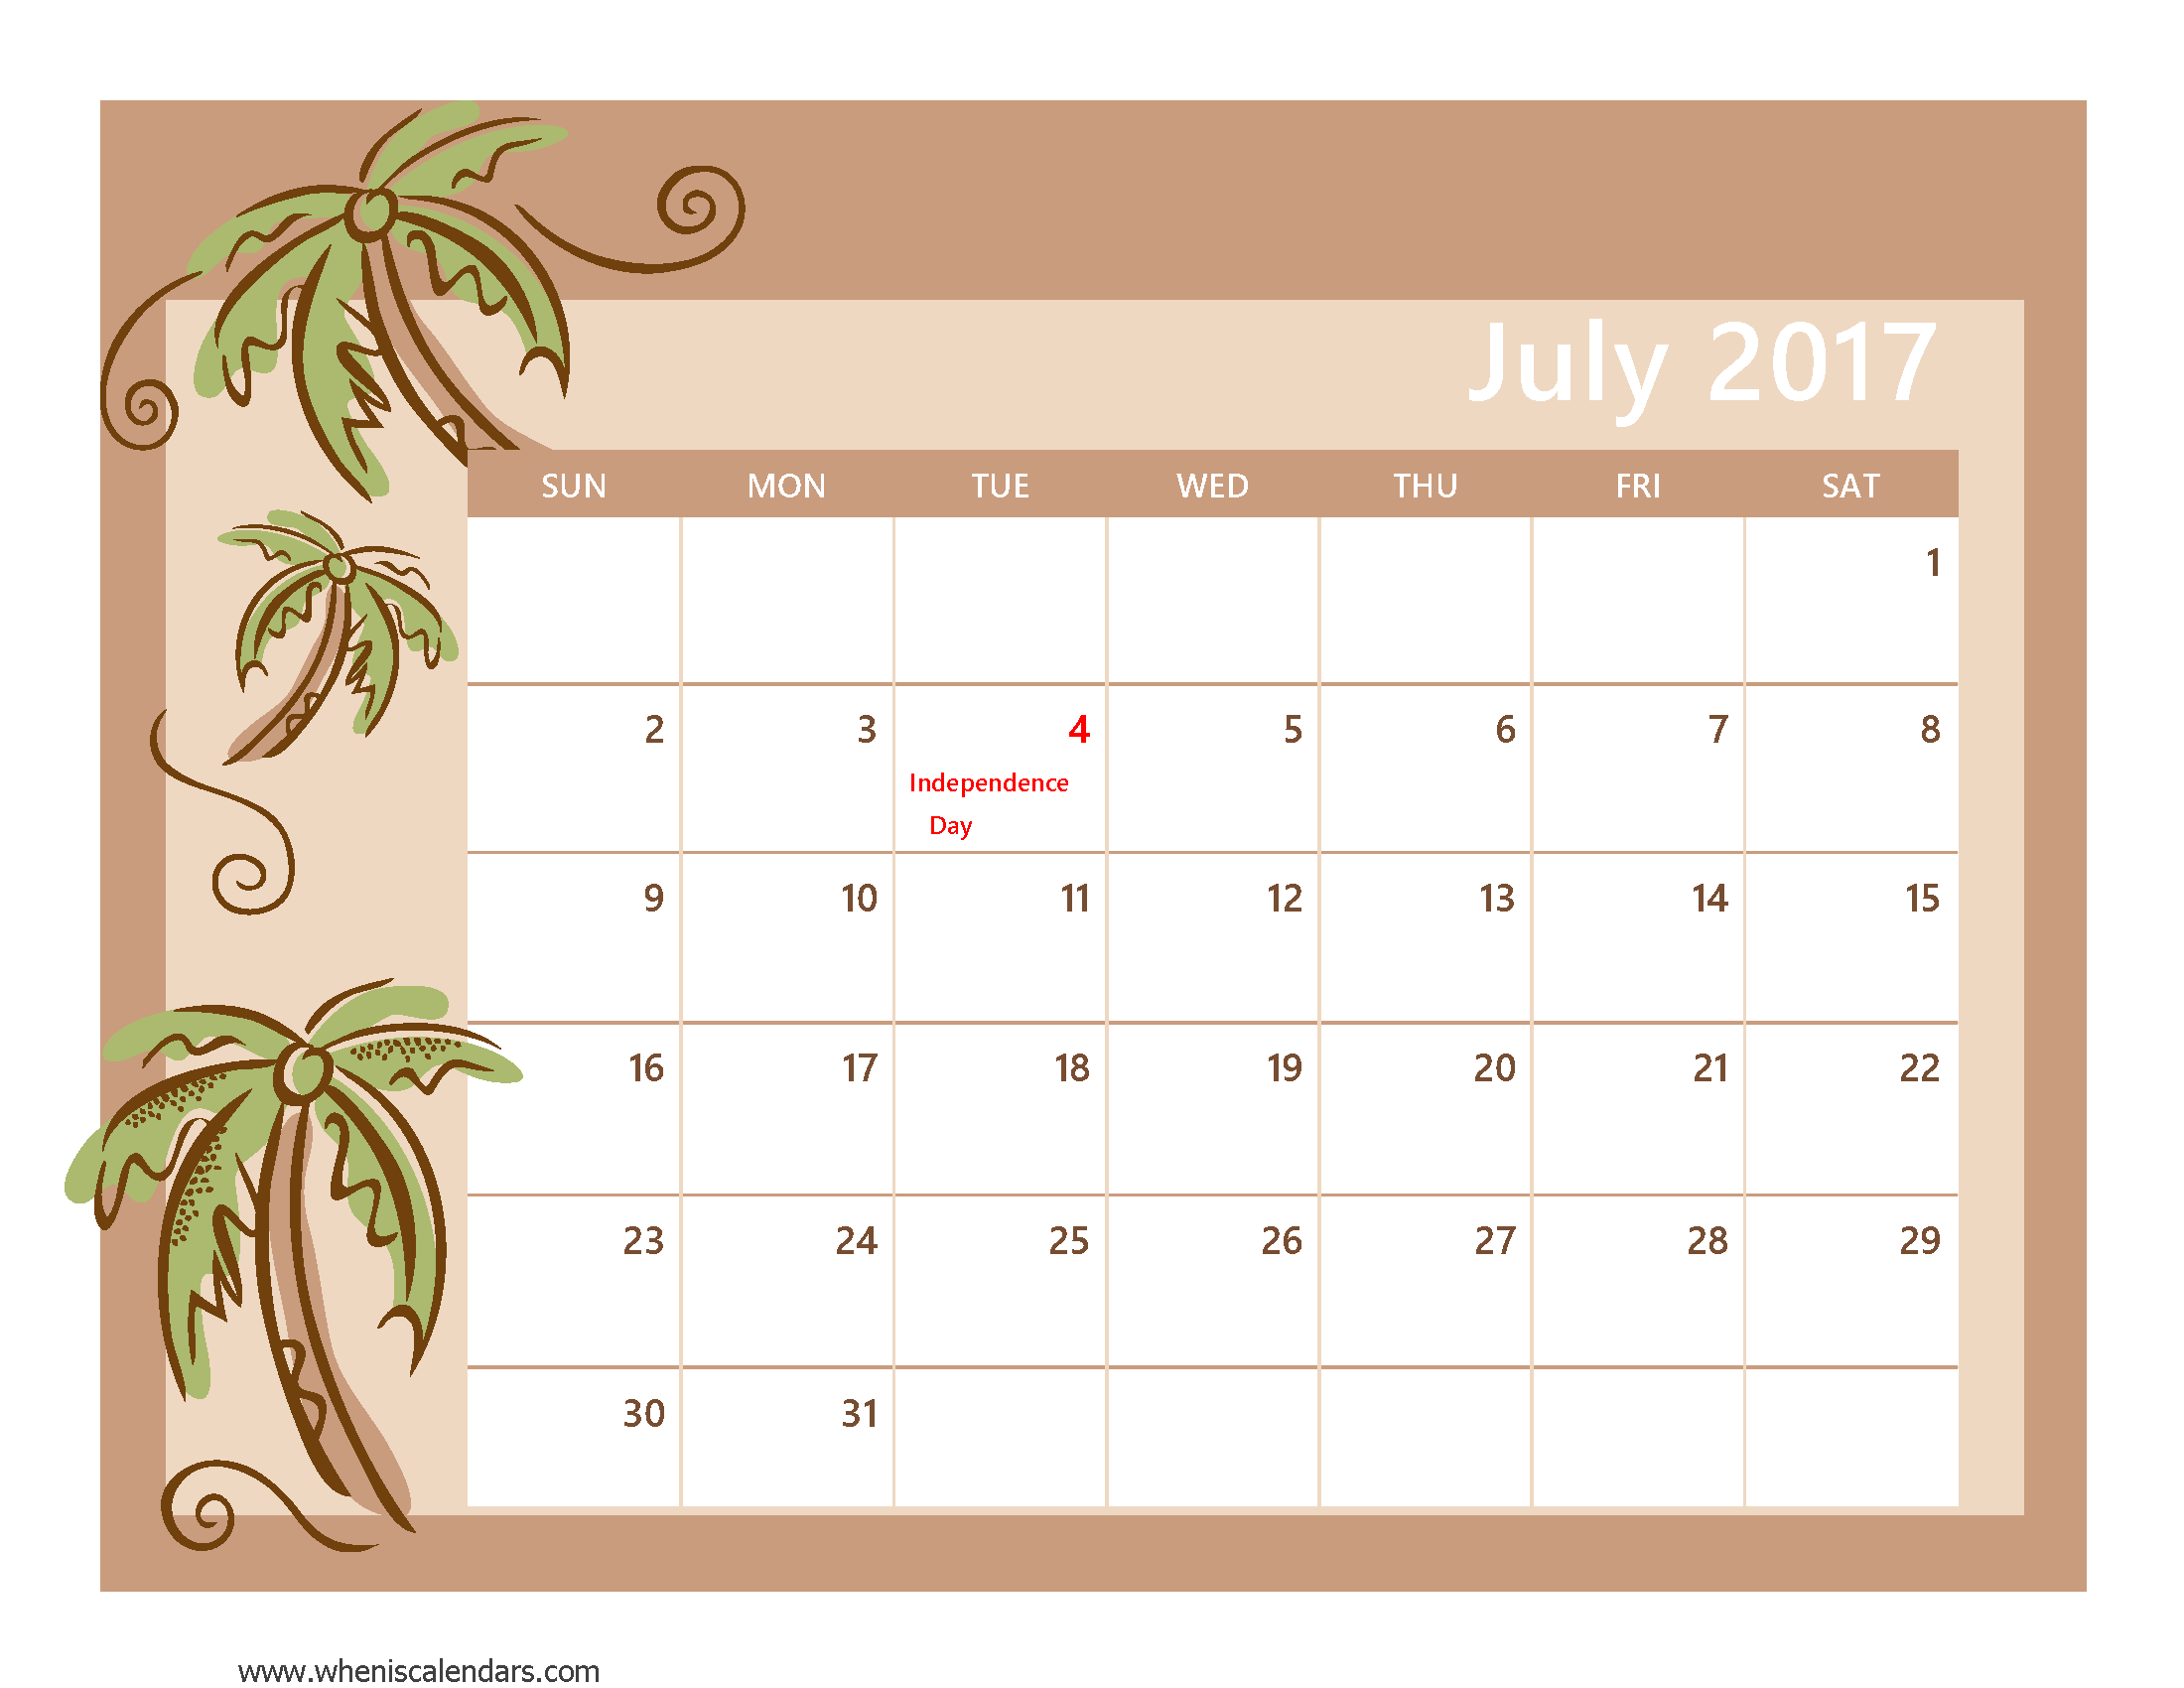 Printable July When Is Calendars  Yahoo Image Search Results